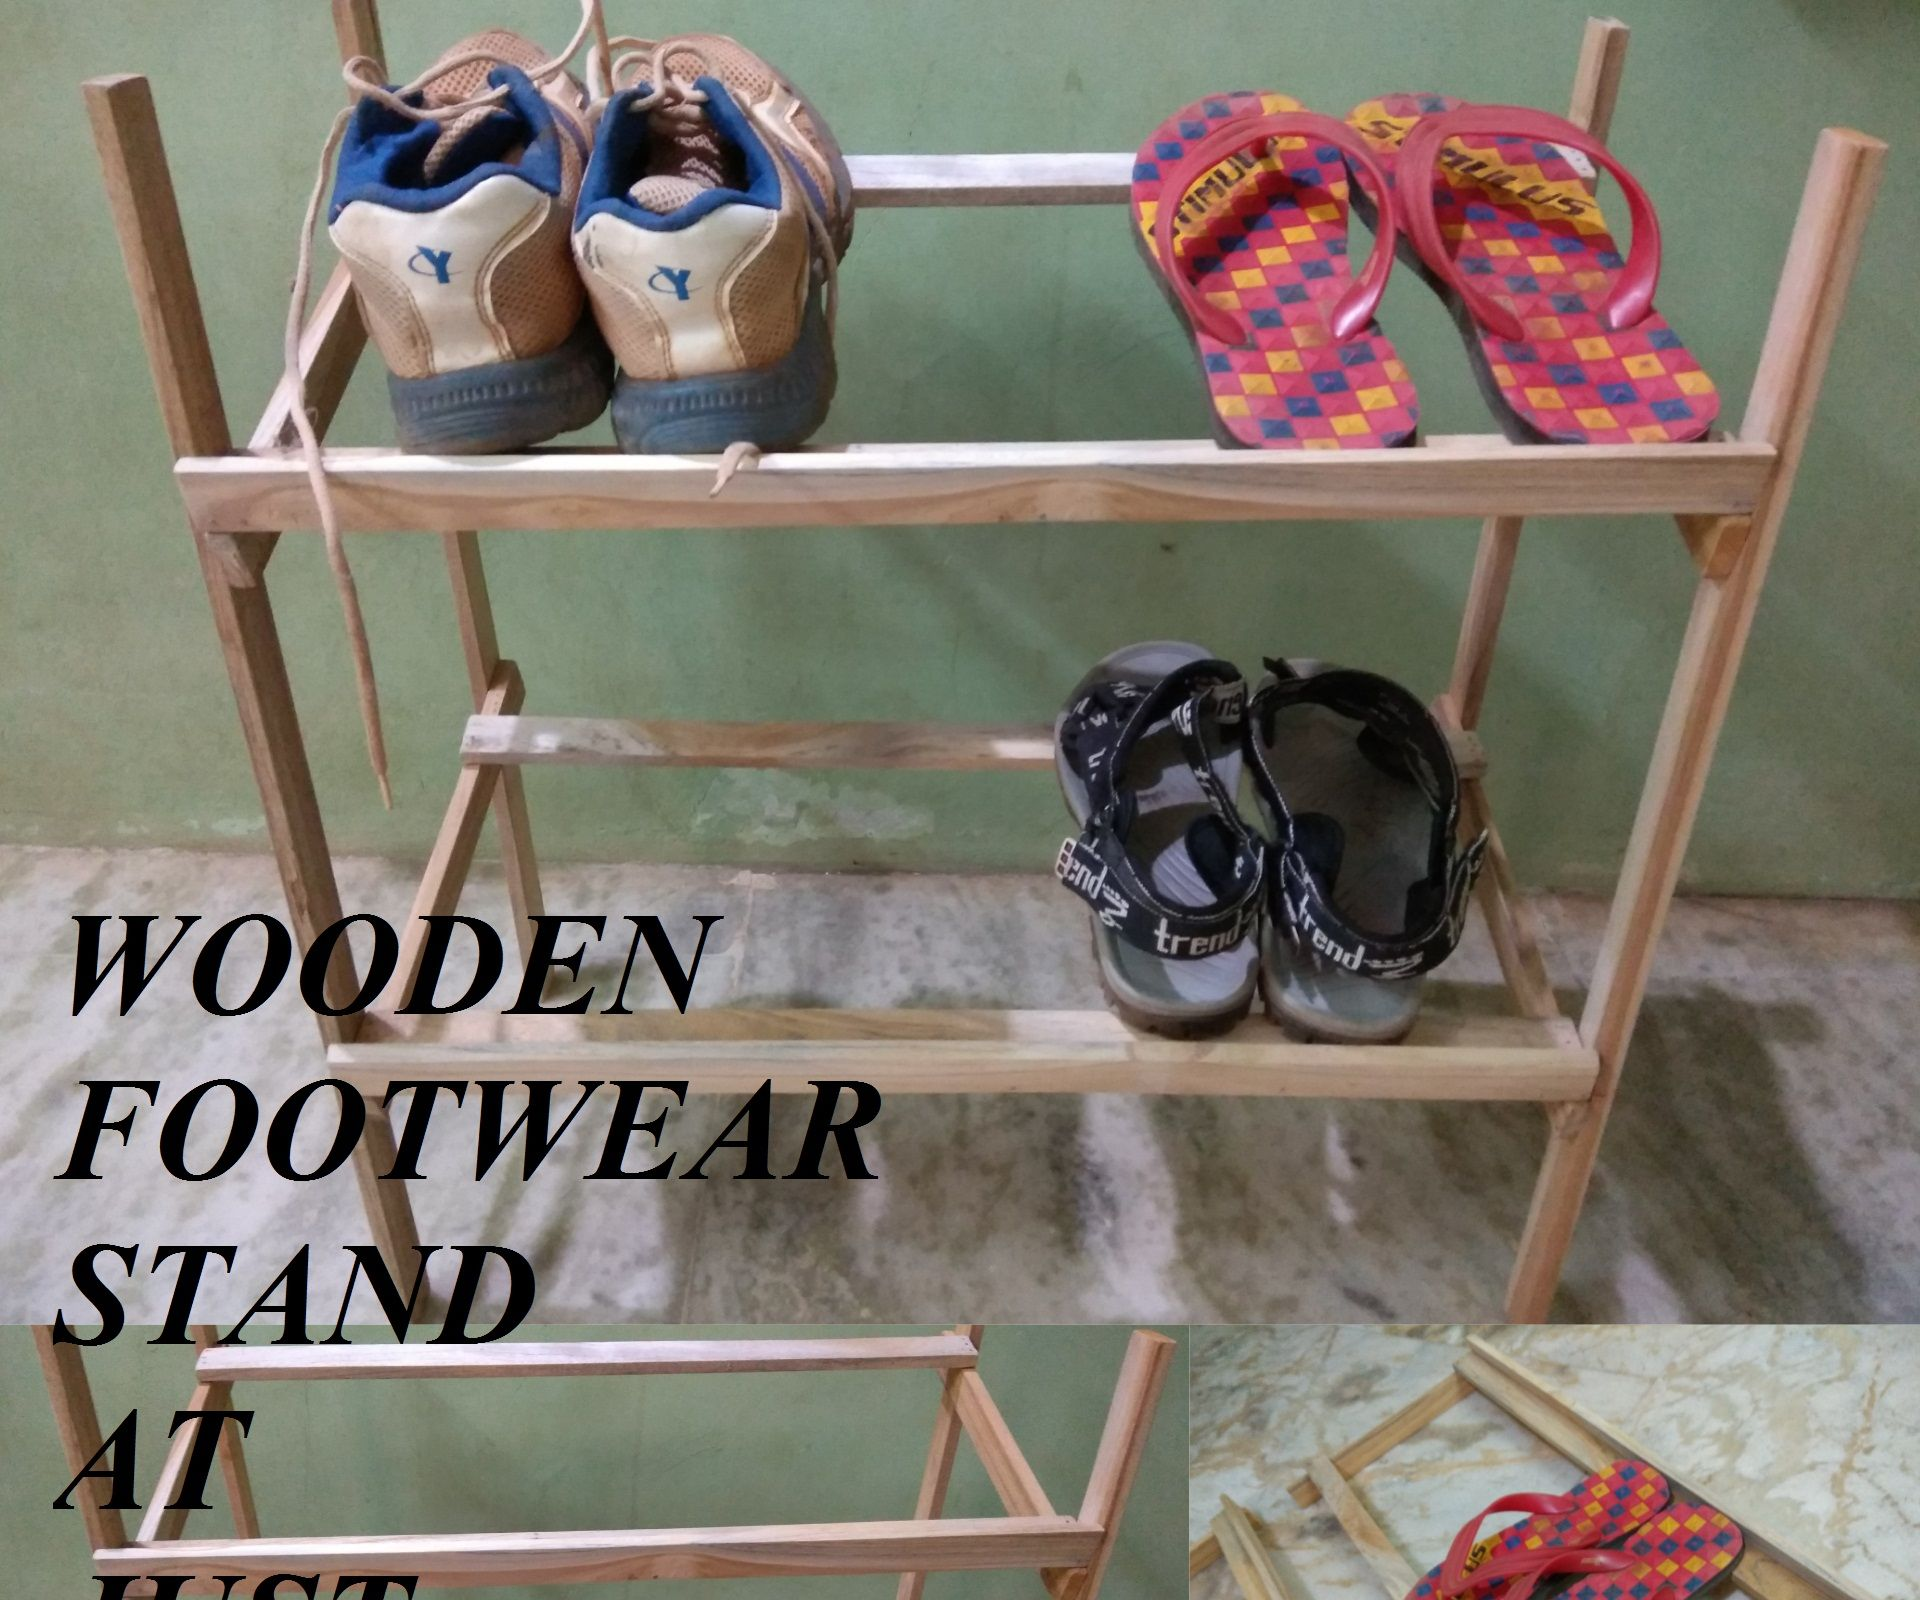 WOODEN  FOOTWEAR AT JUST 60.Rs or 1$